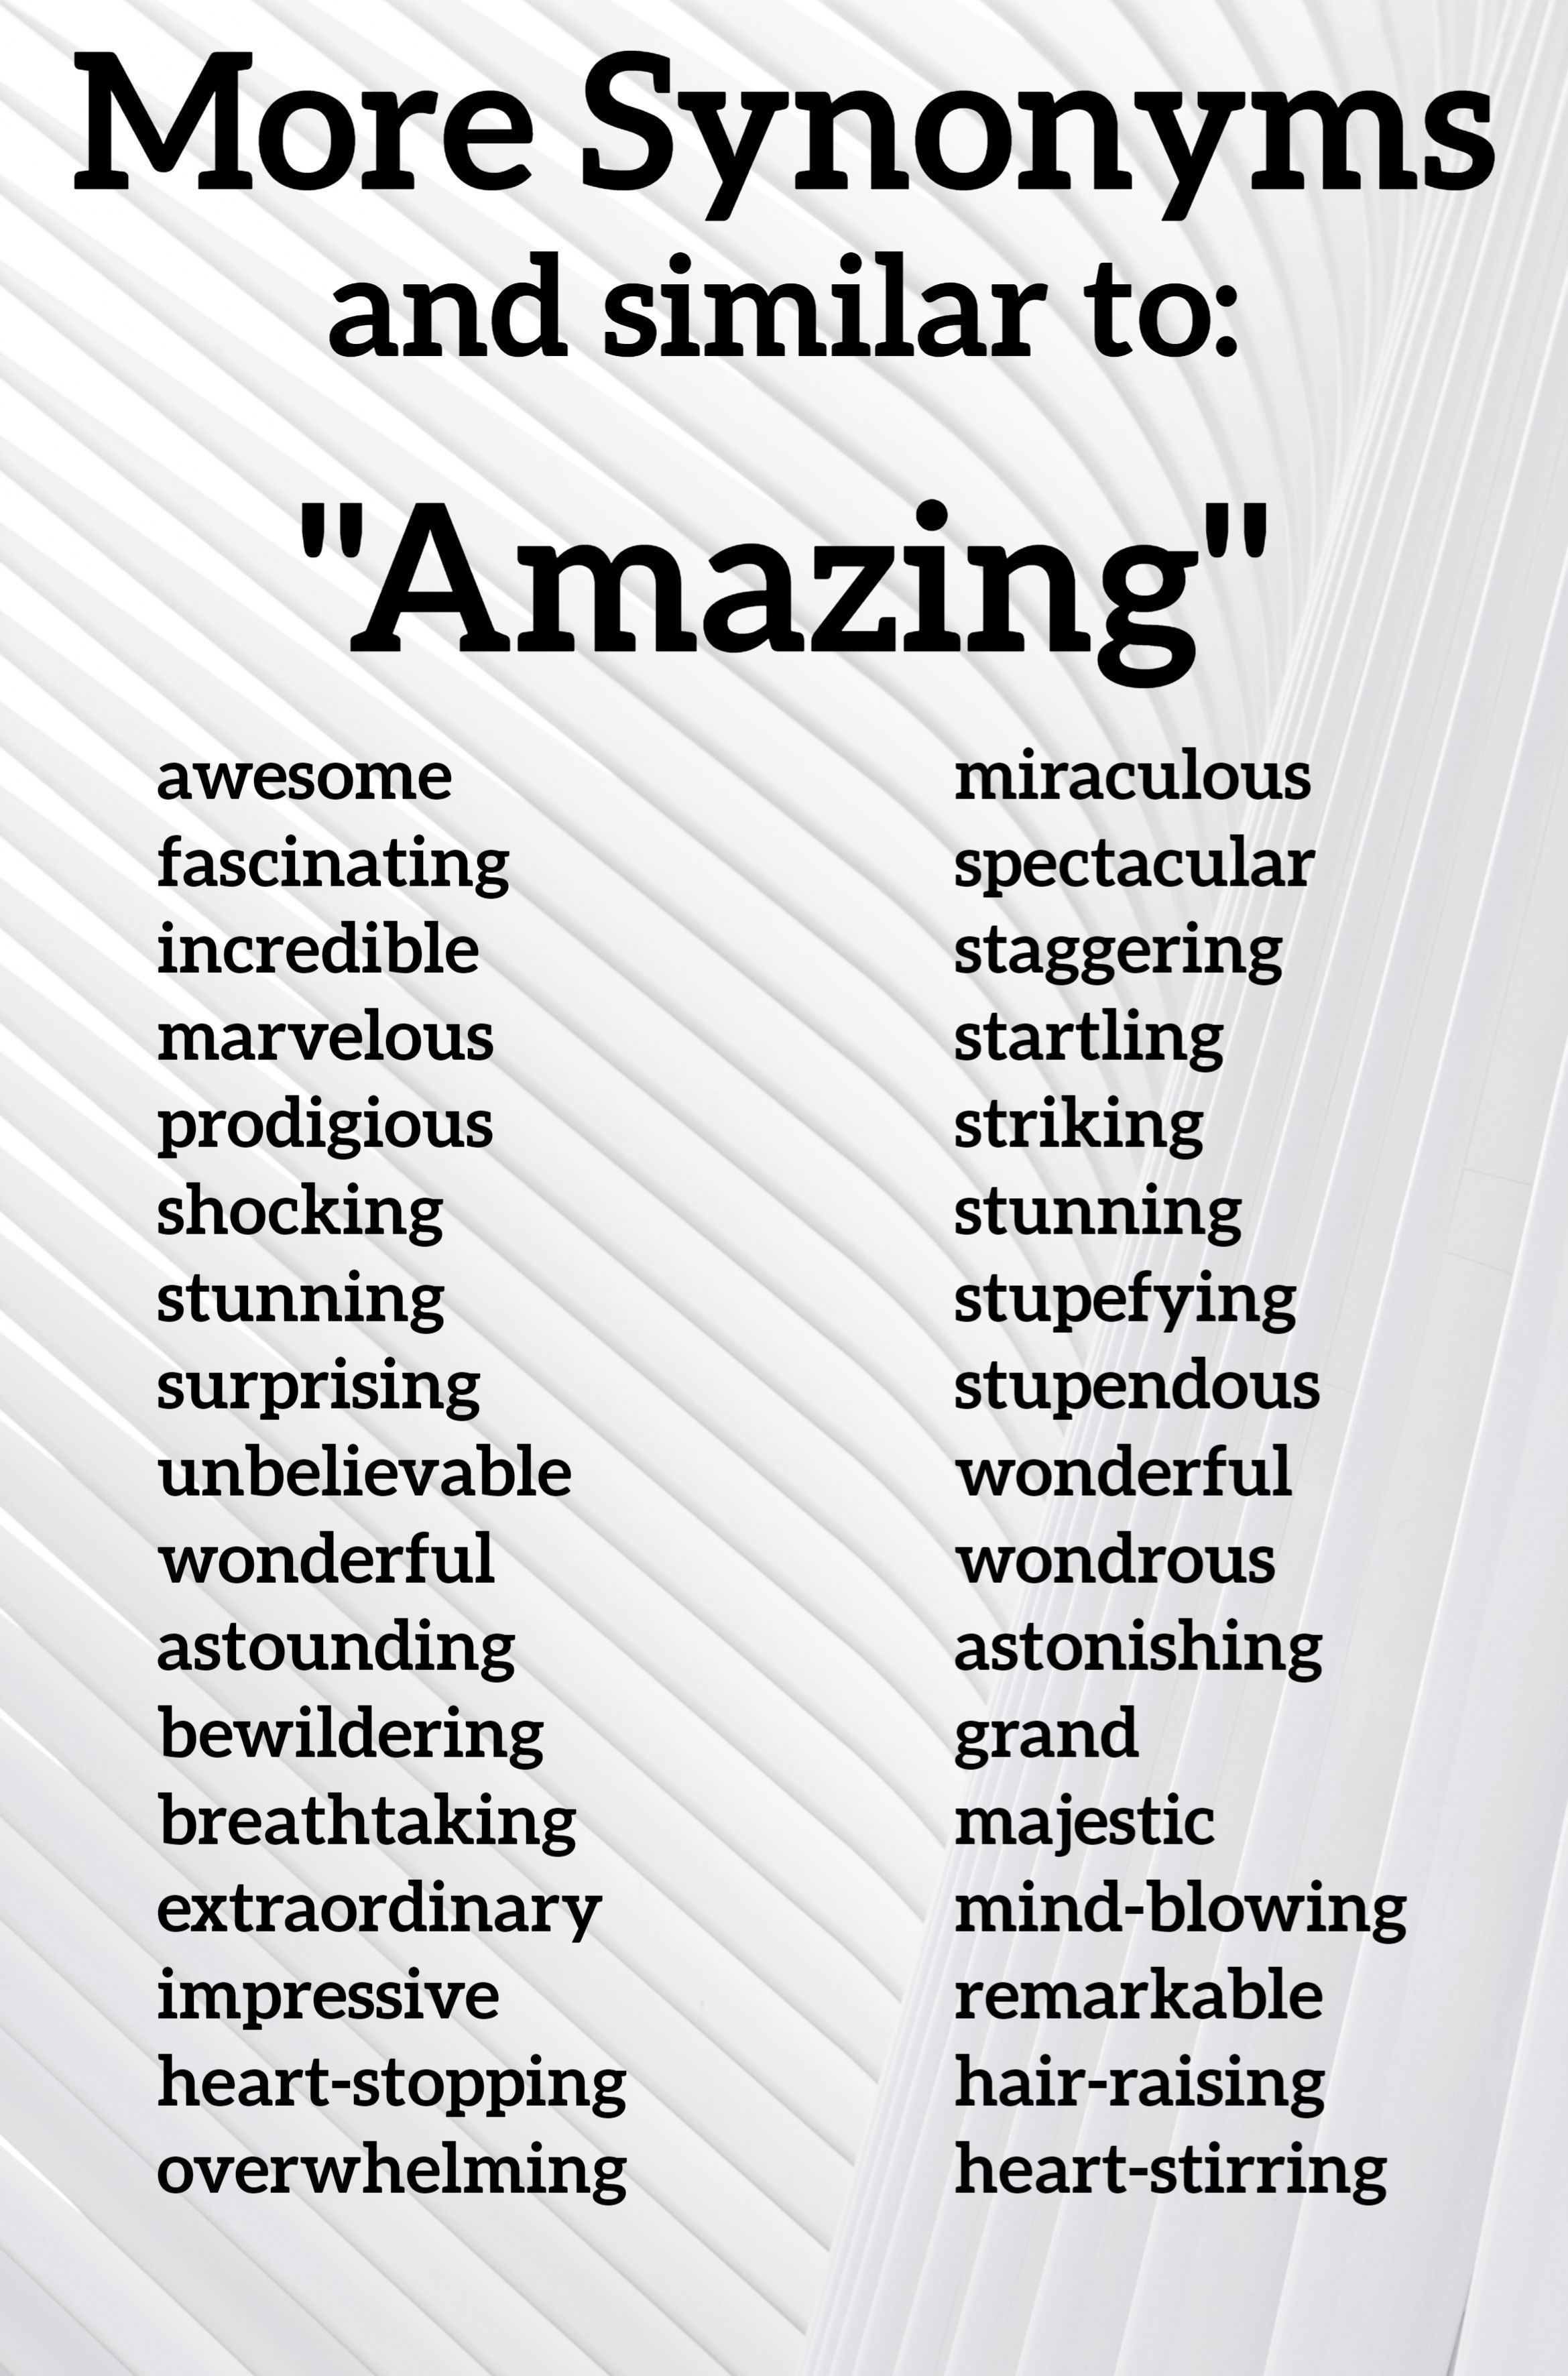 More synonyms for amazing